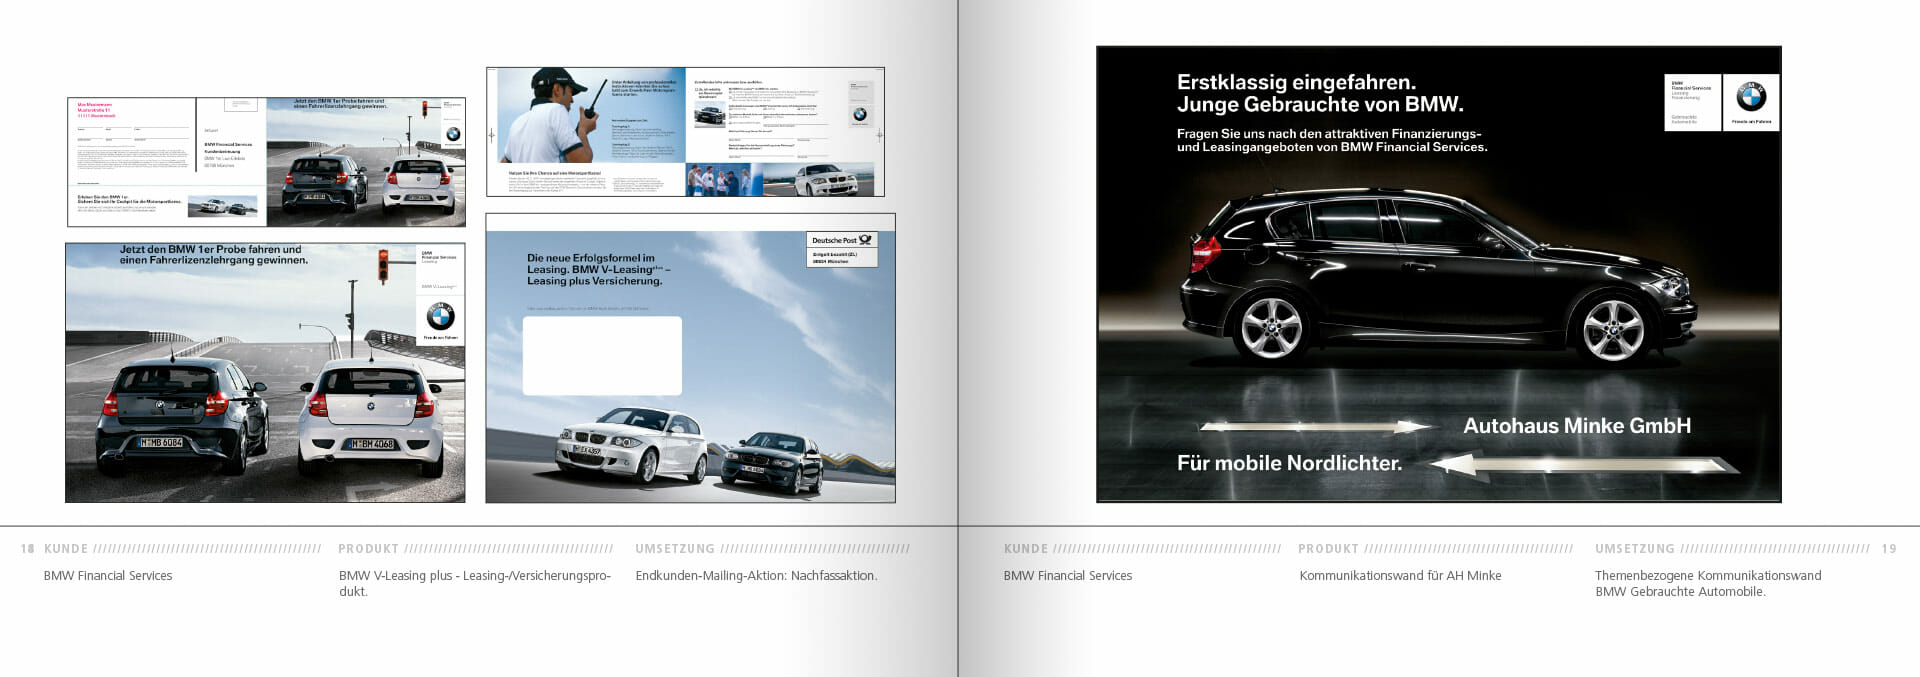 BMW Group Works 2001-2009 Booklet 18-19